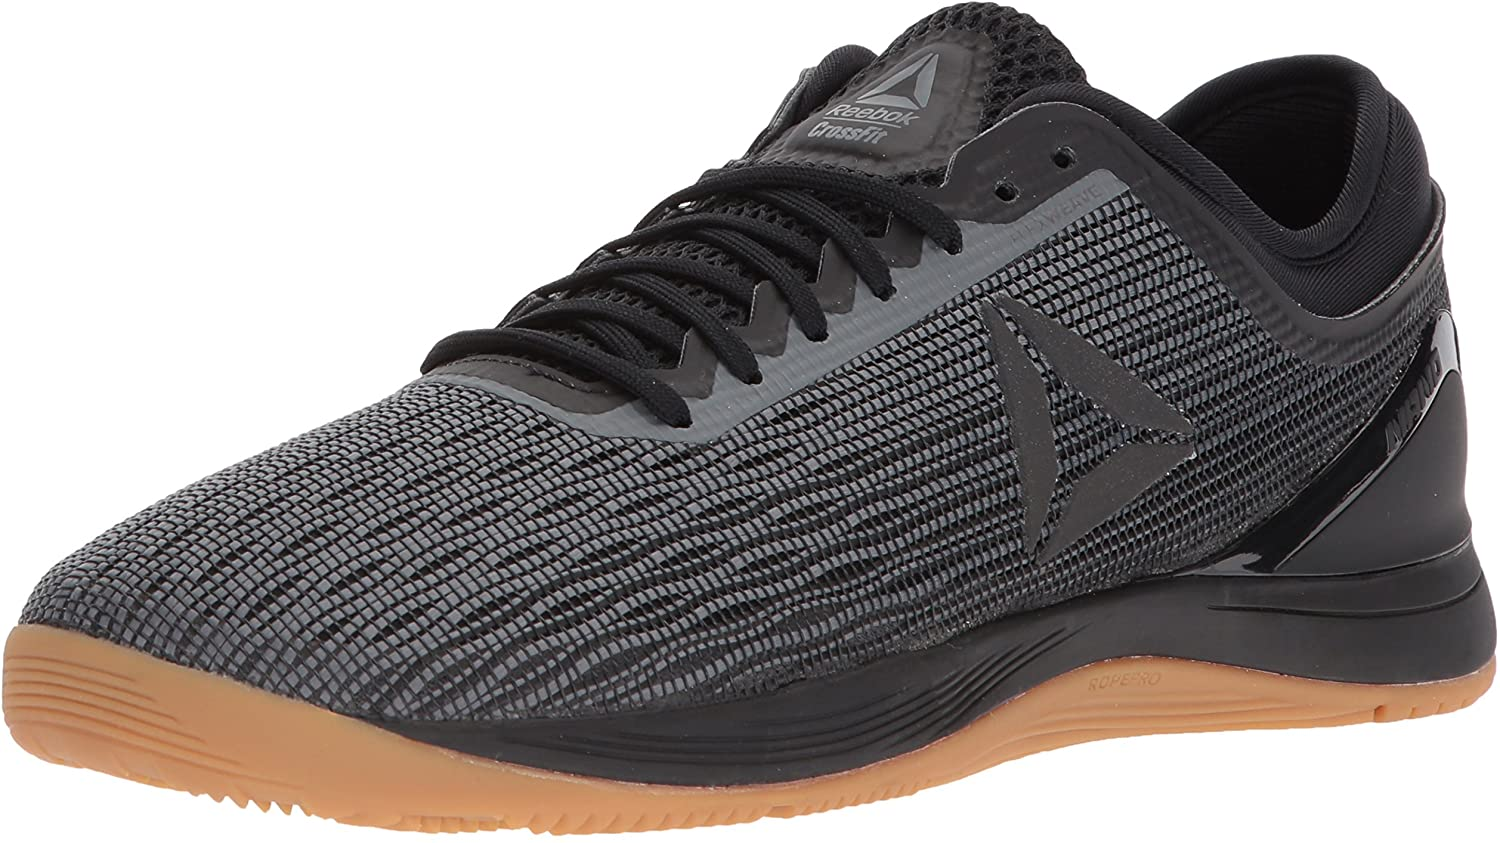 Best Non-Cycling Shoes for Cycling